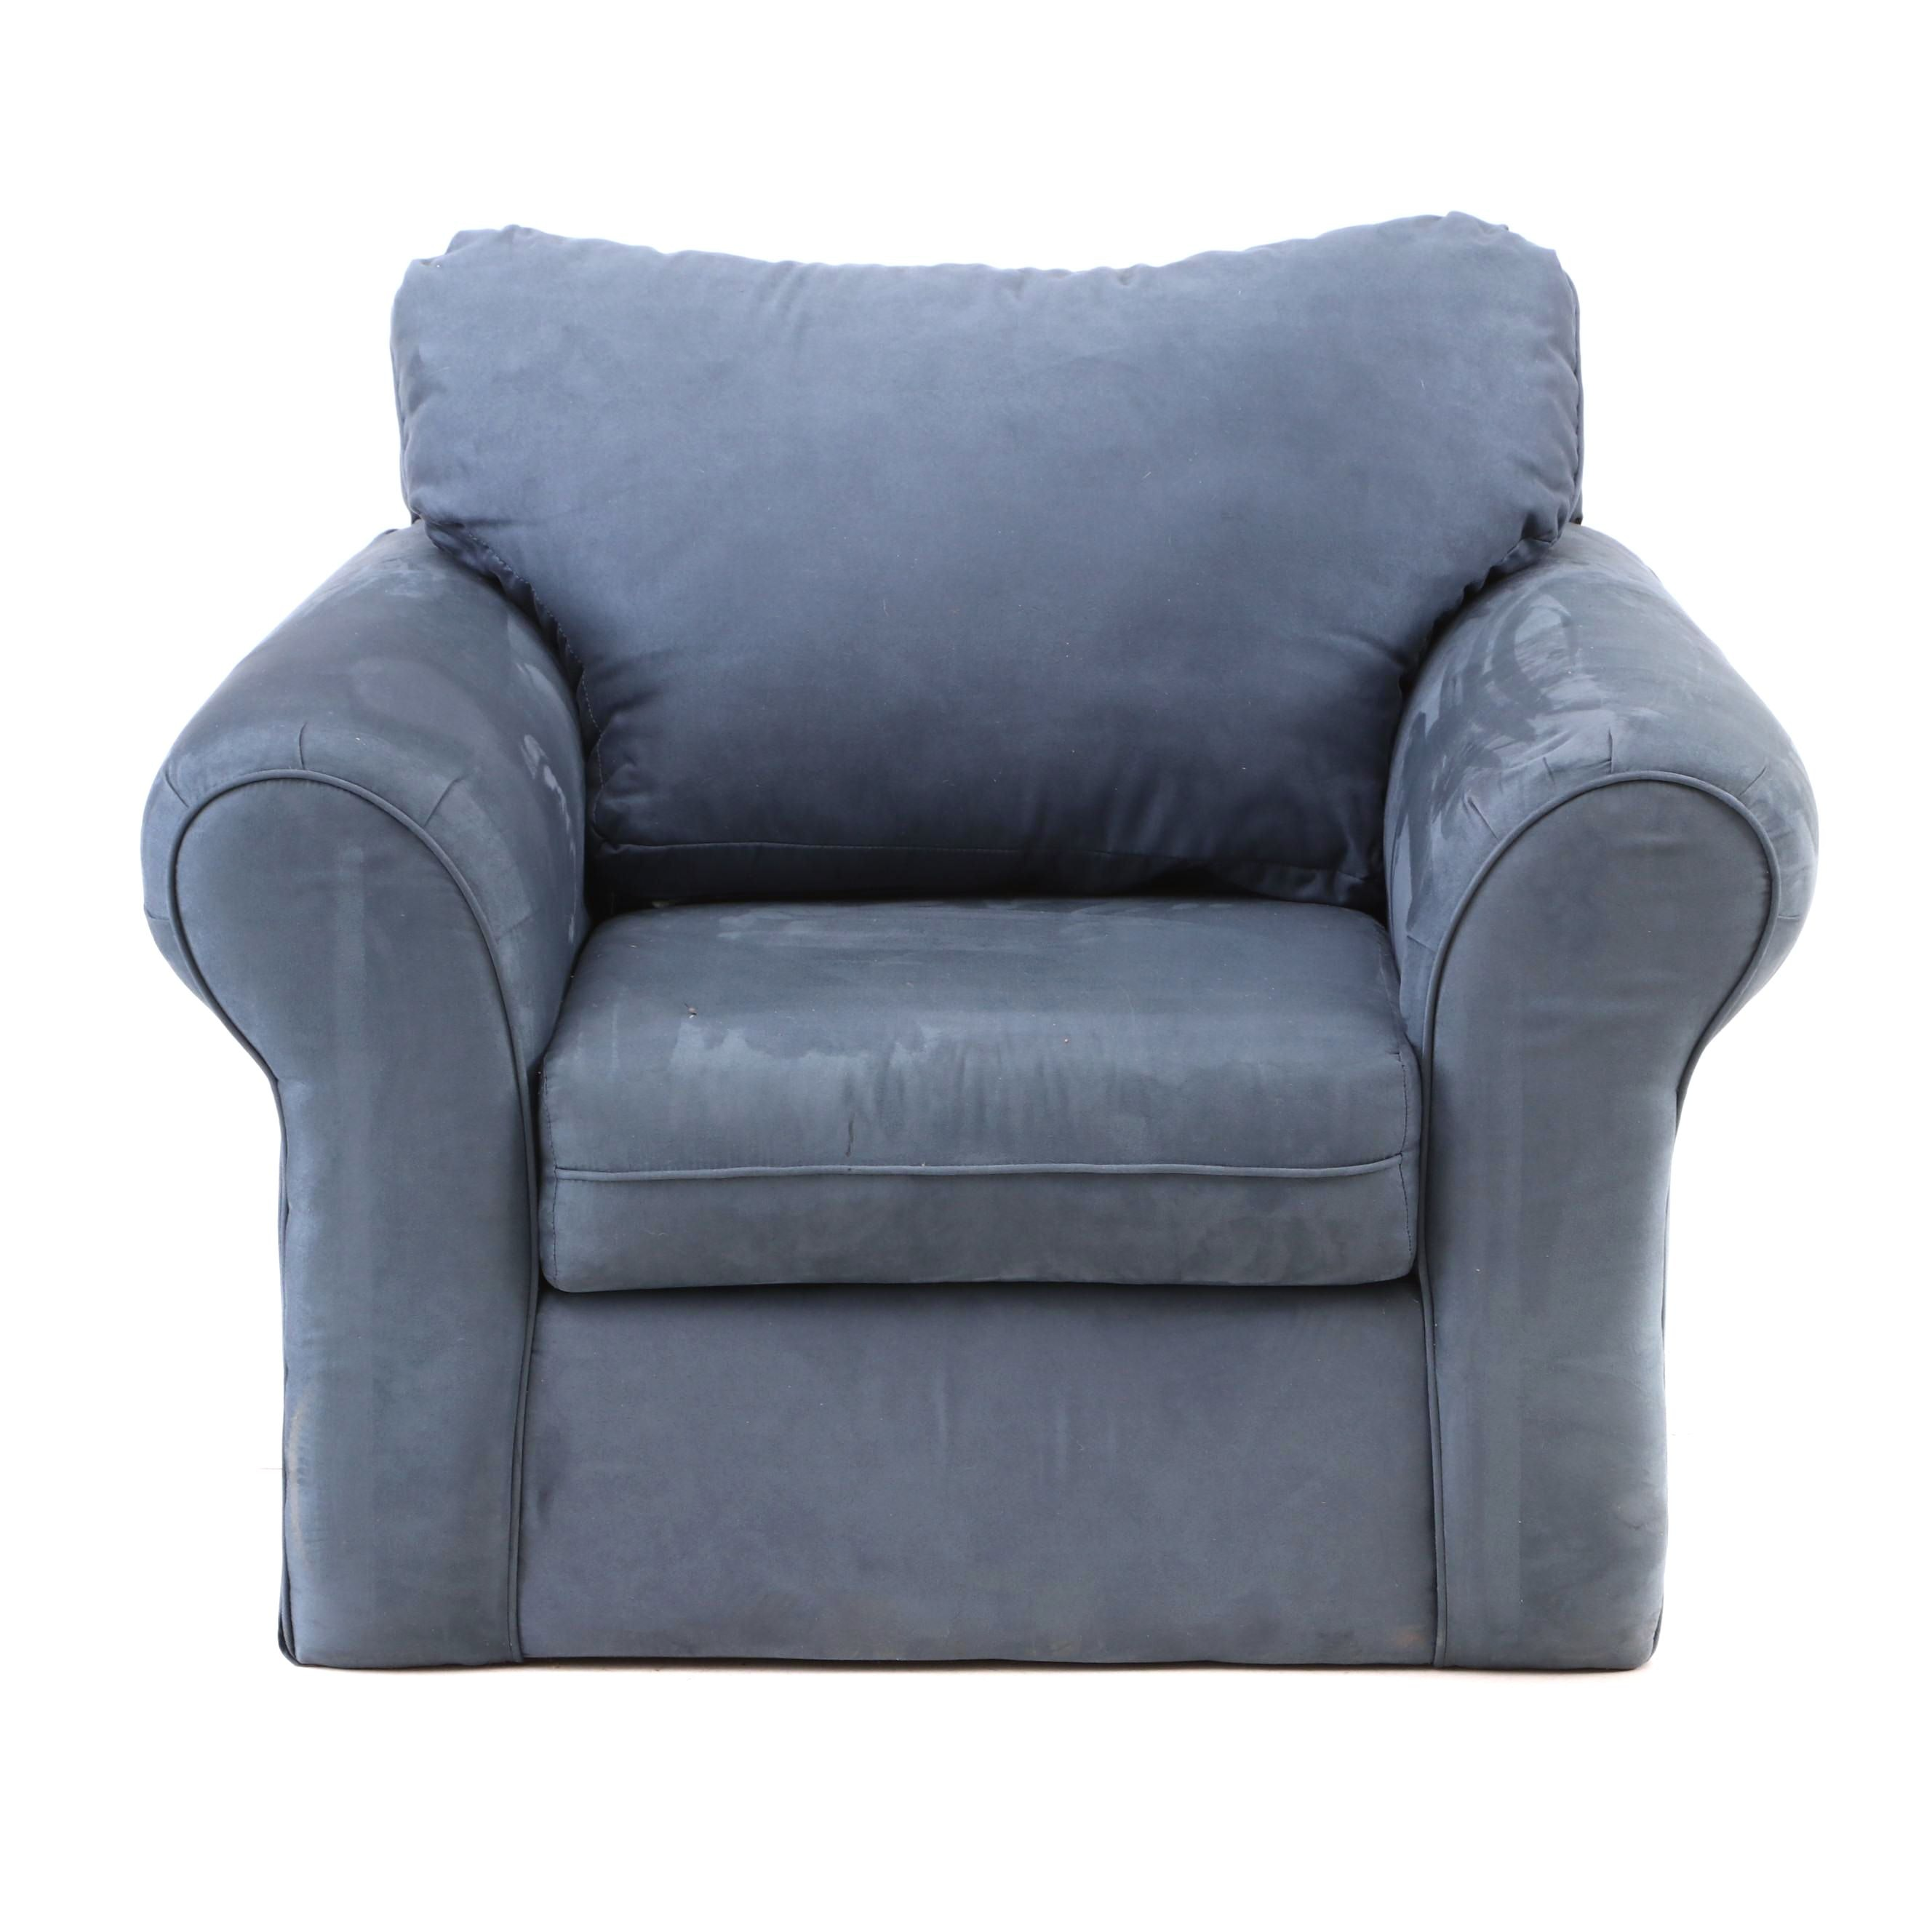 Blue Suede Upholstered Arm Chair